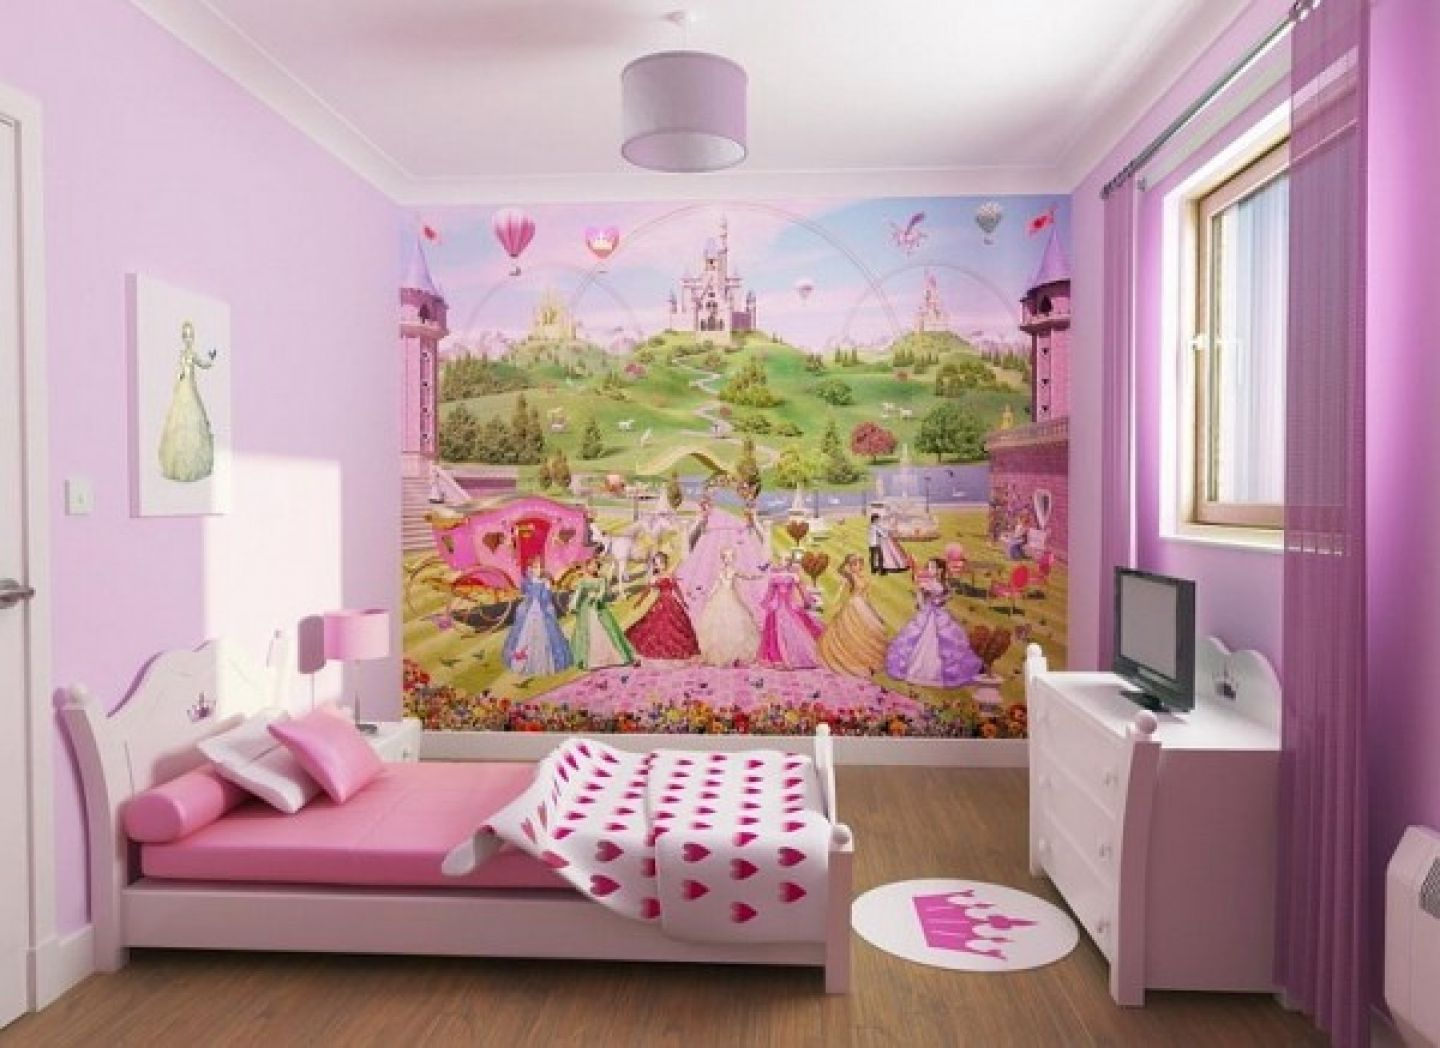 Girls Bedroom Decorating Ideas Simple Girls' Bedroom Style  Bedrooms Small Bedroom Decorating And Room Design Decoration